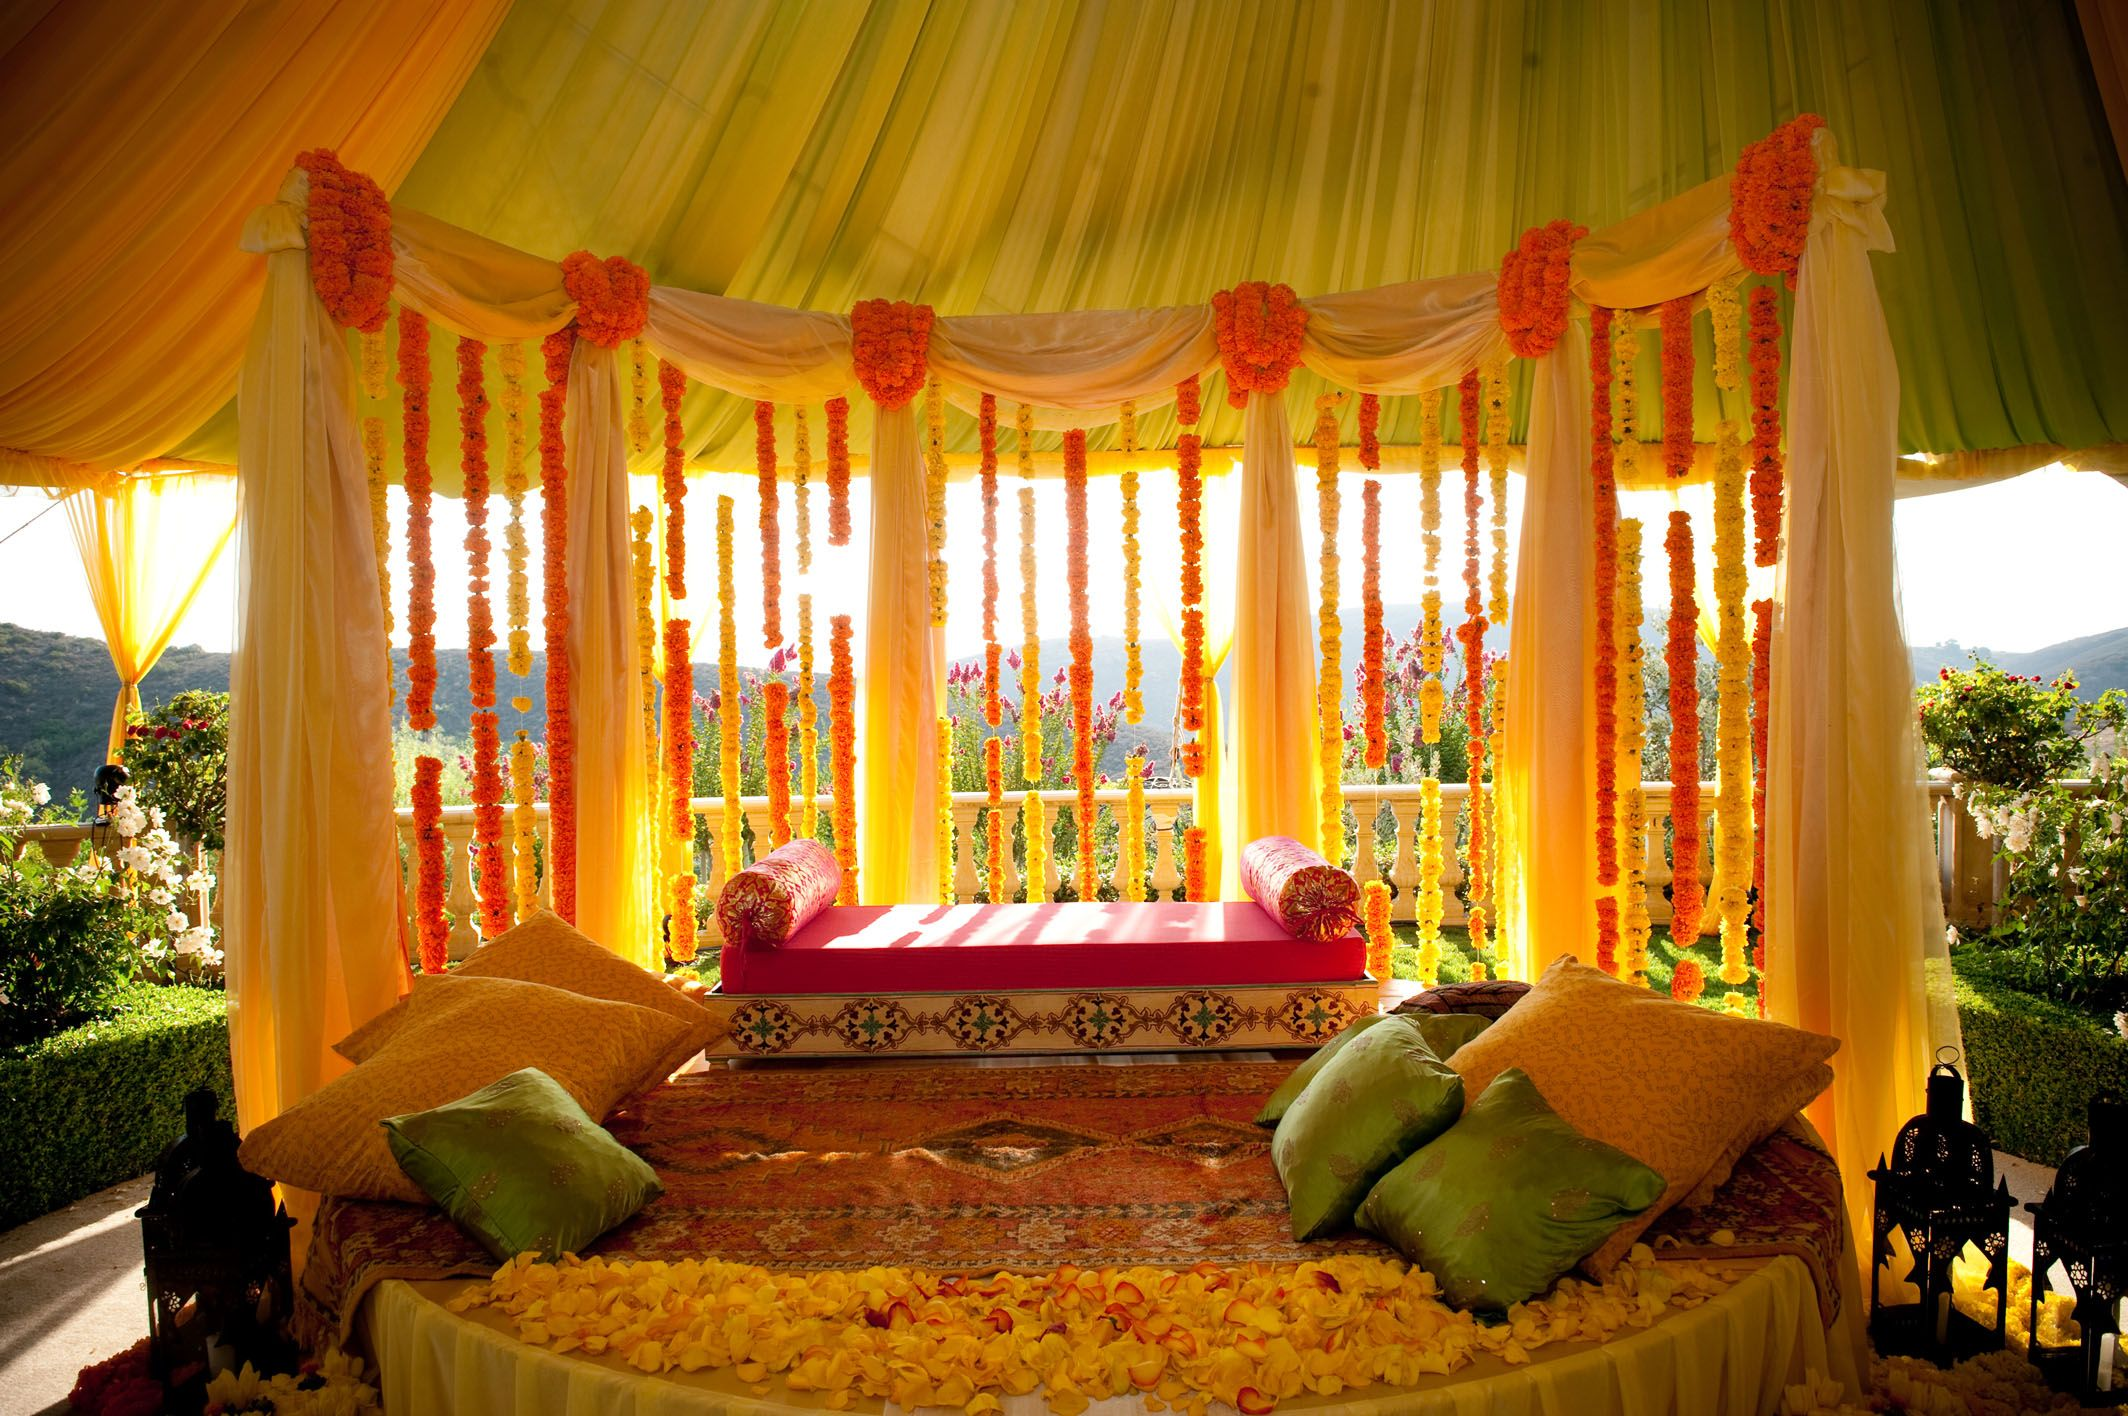 Home Decor Ideas For Indian Wedding Part - 25: Indian Weddings Decorations: Serene Grace! Posted By Soma Sengupta